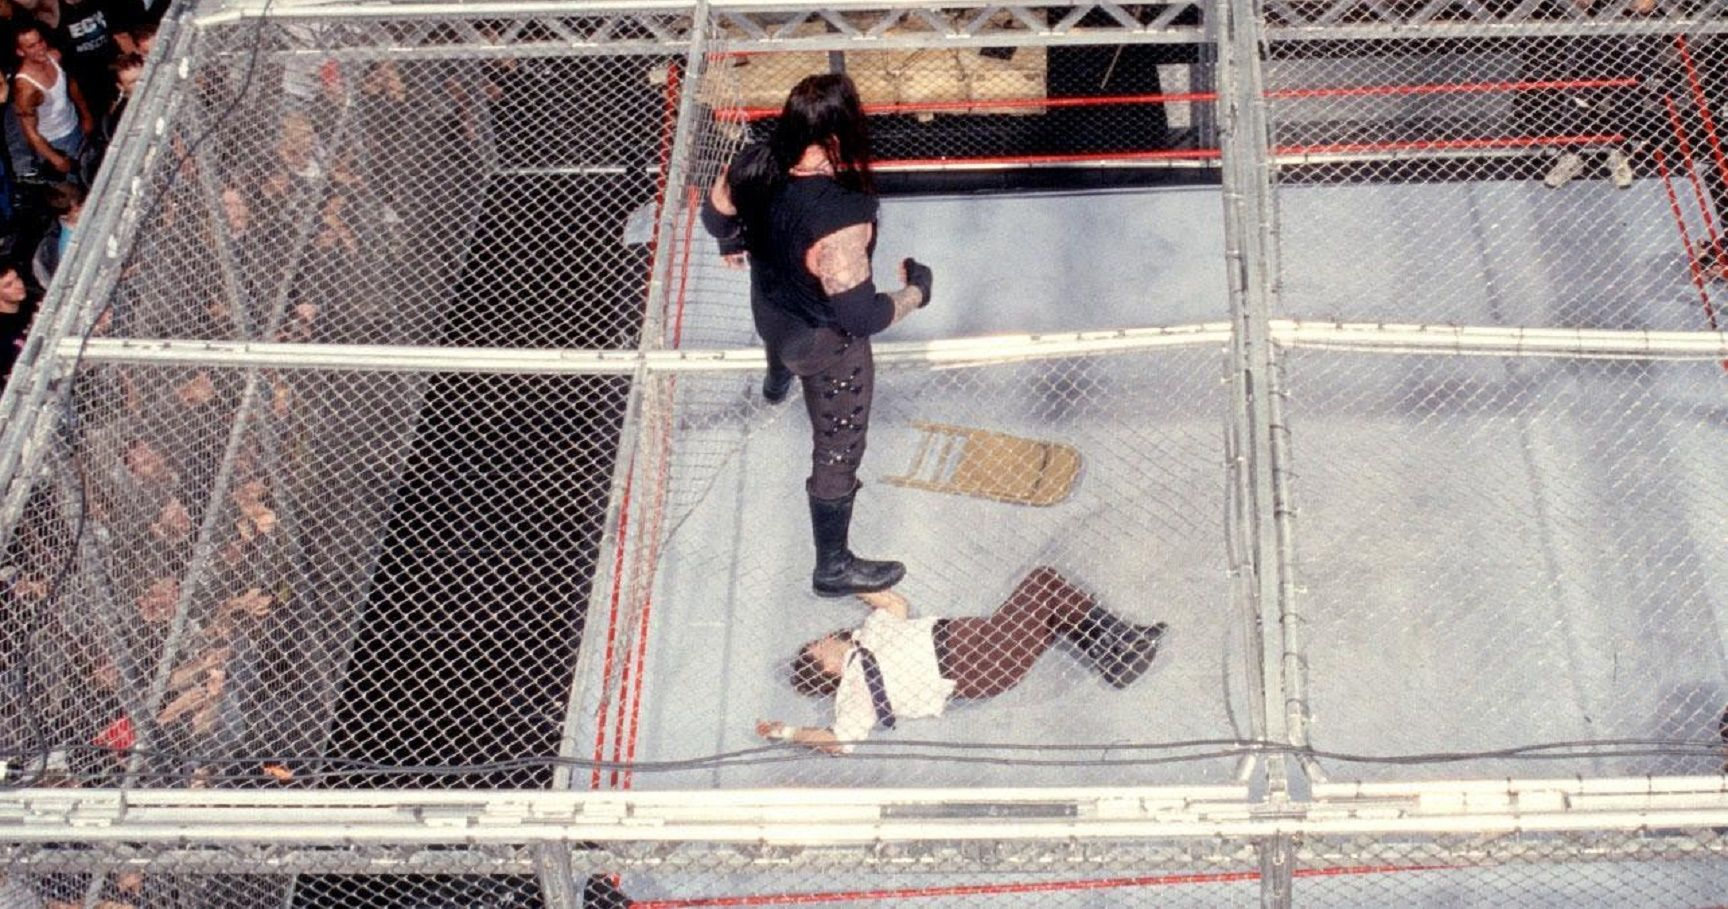 Top 15 Craziest Matches in WWE History | TheSportster